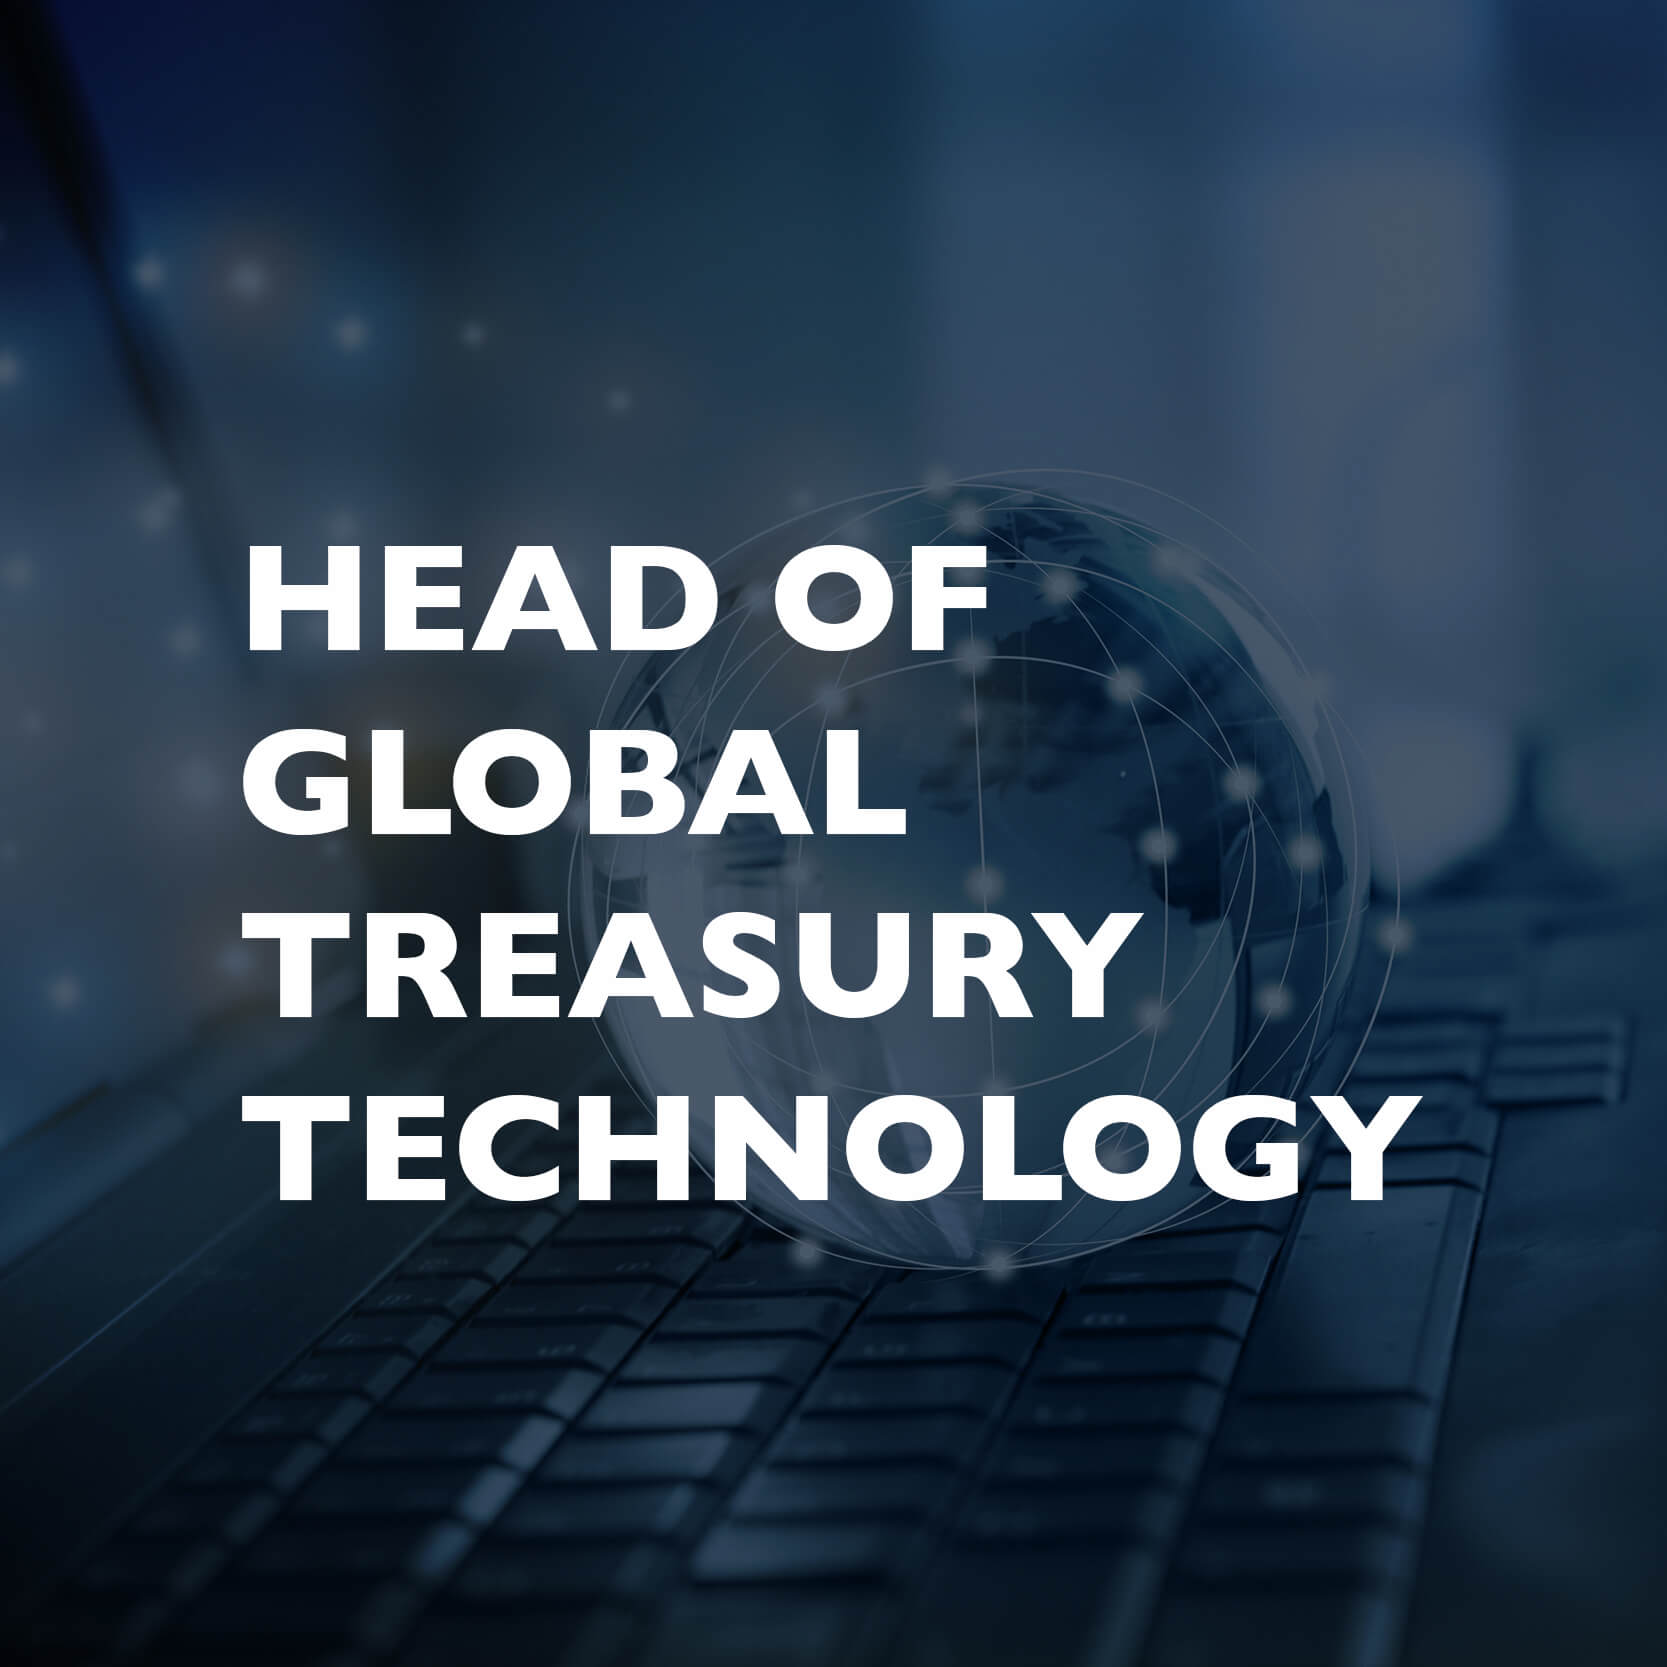 Head of treasury technology